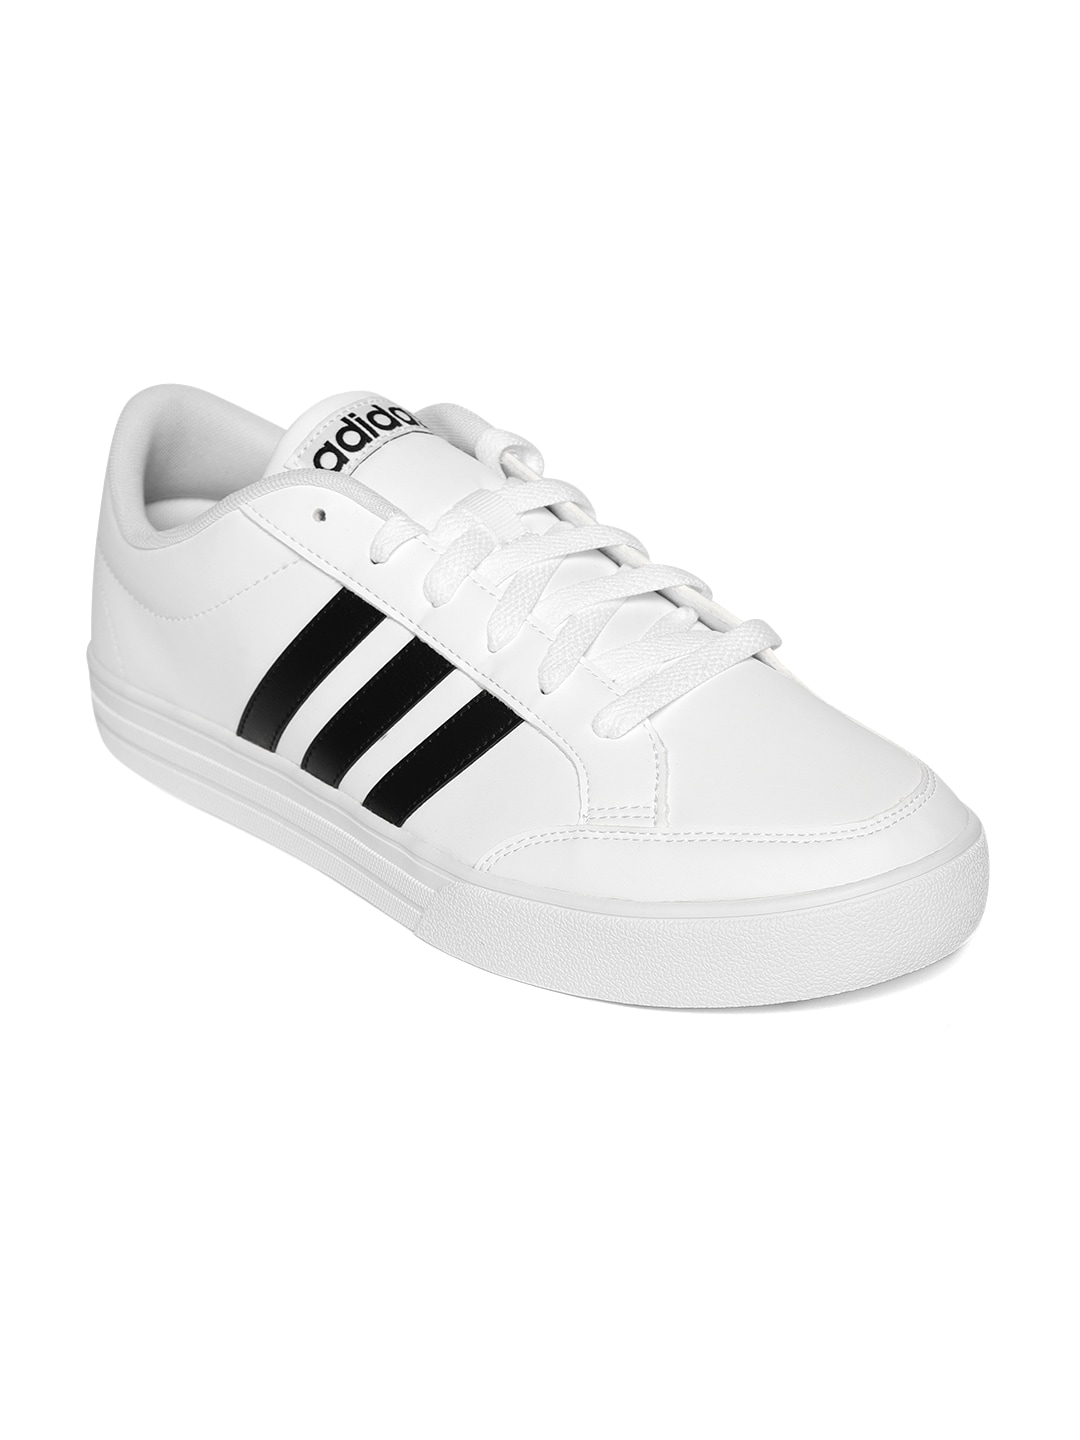 Shoes Myntra Women Shoes for Buy Online Menamp; Adidas Adidas deorBxC